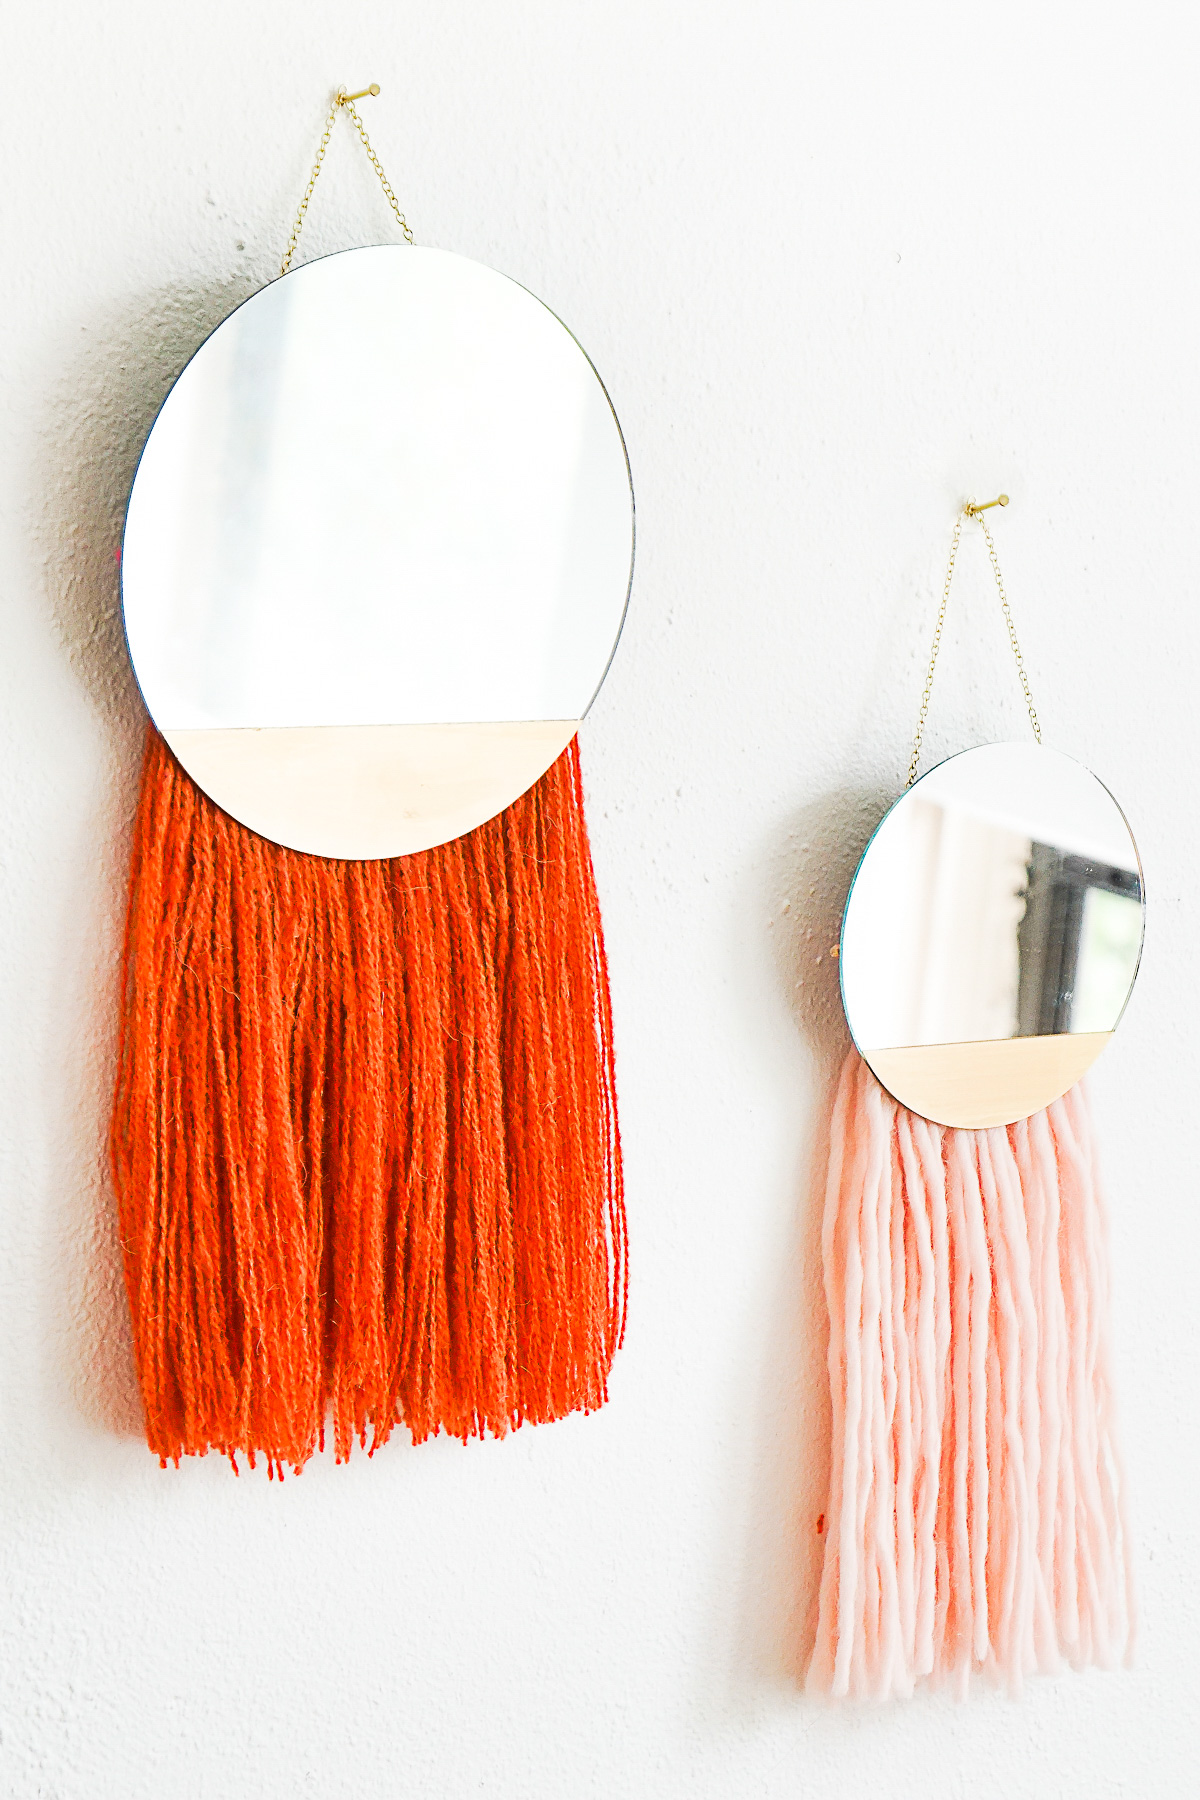 You can never have have too much fringe!